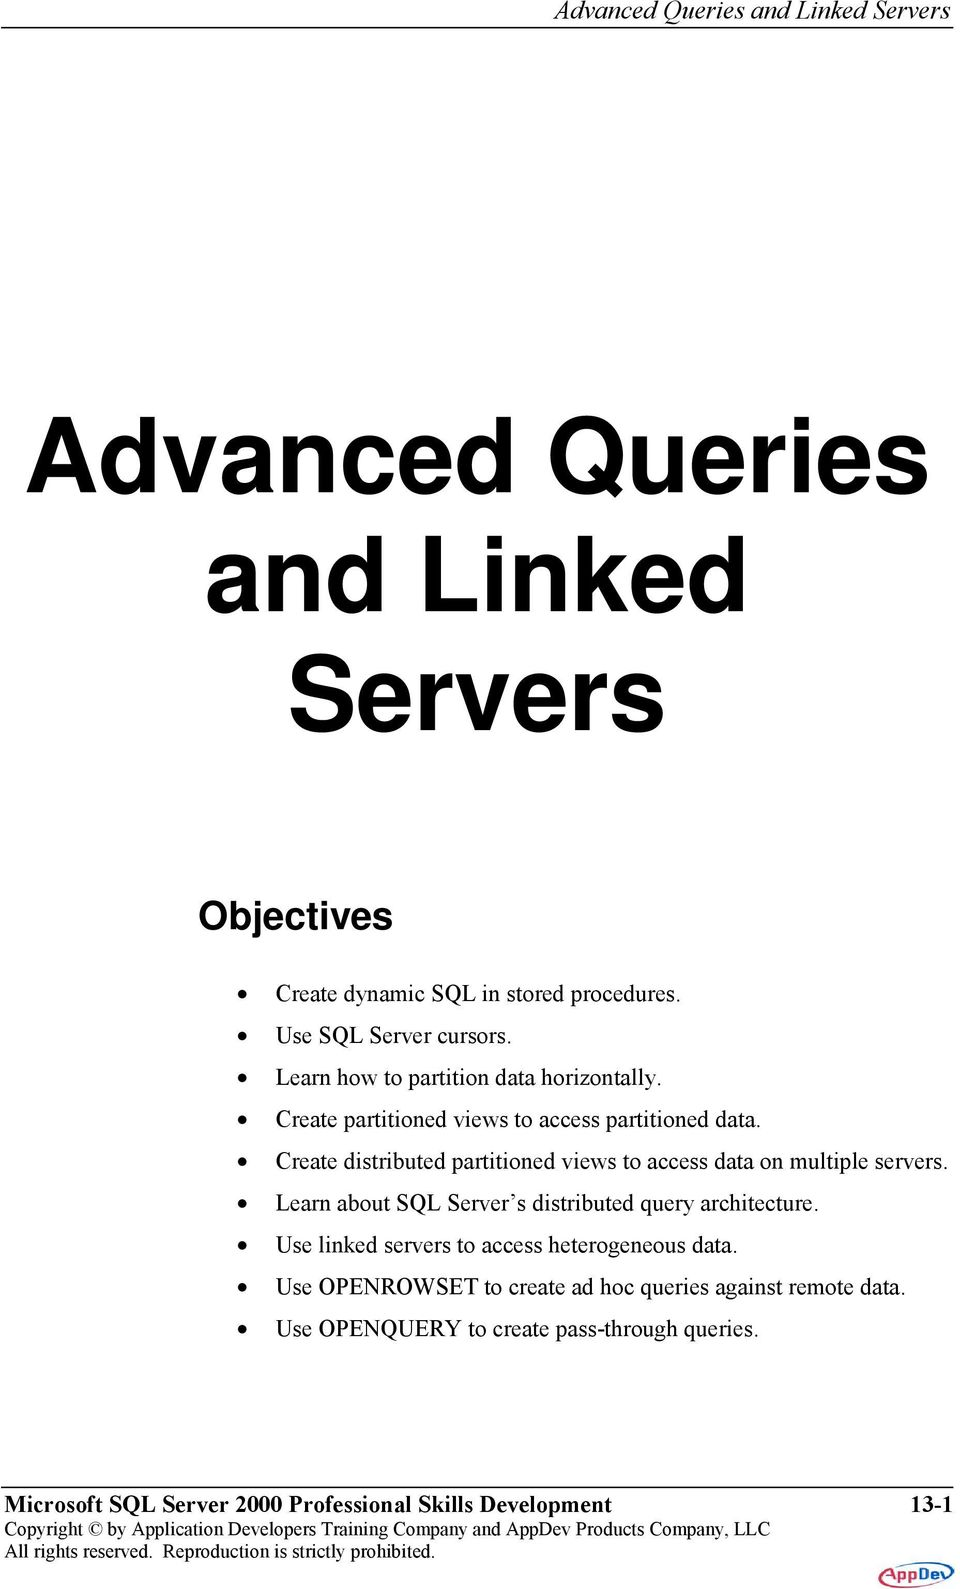 Advanced Queries and Linked Servers - PDF